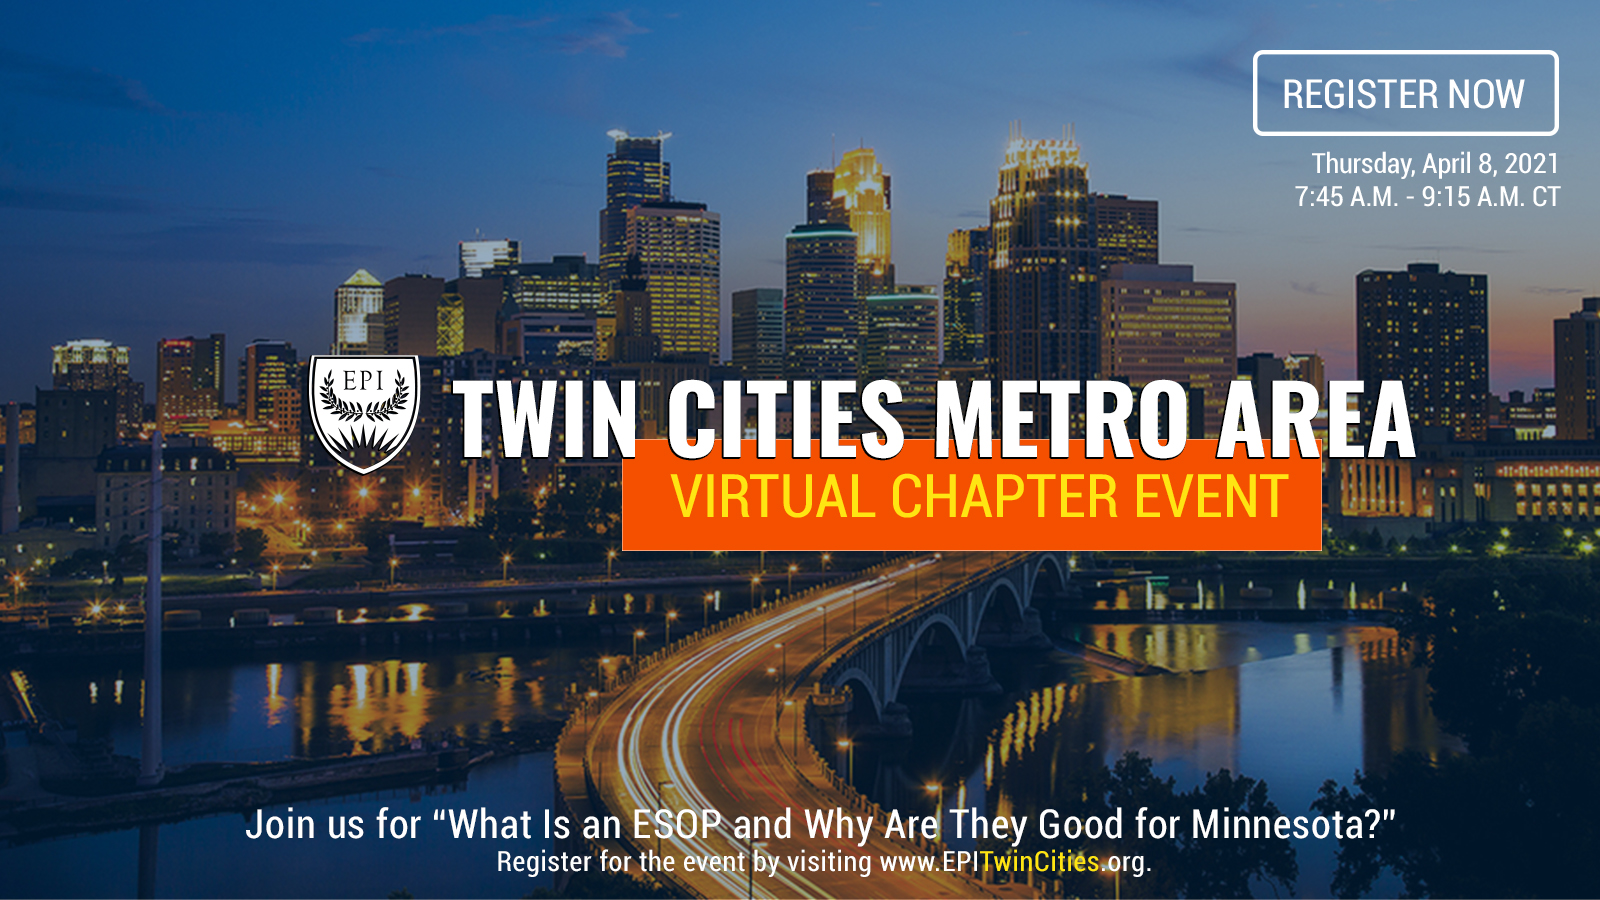 What Is an ESOP and Why Are They Good for Minnesota?